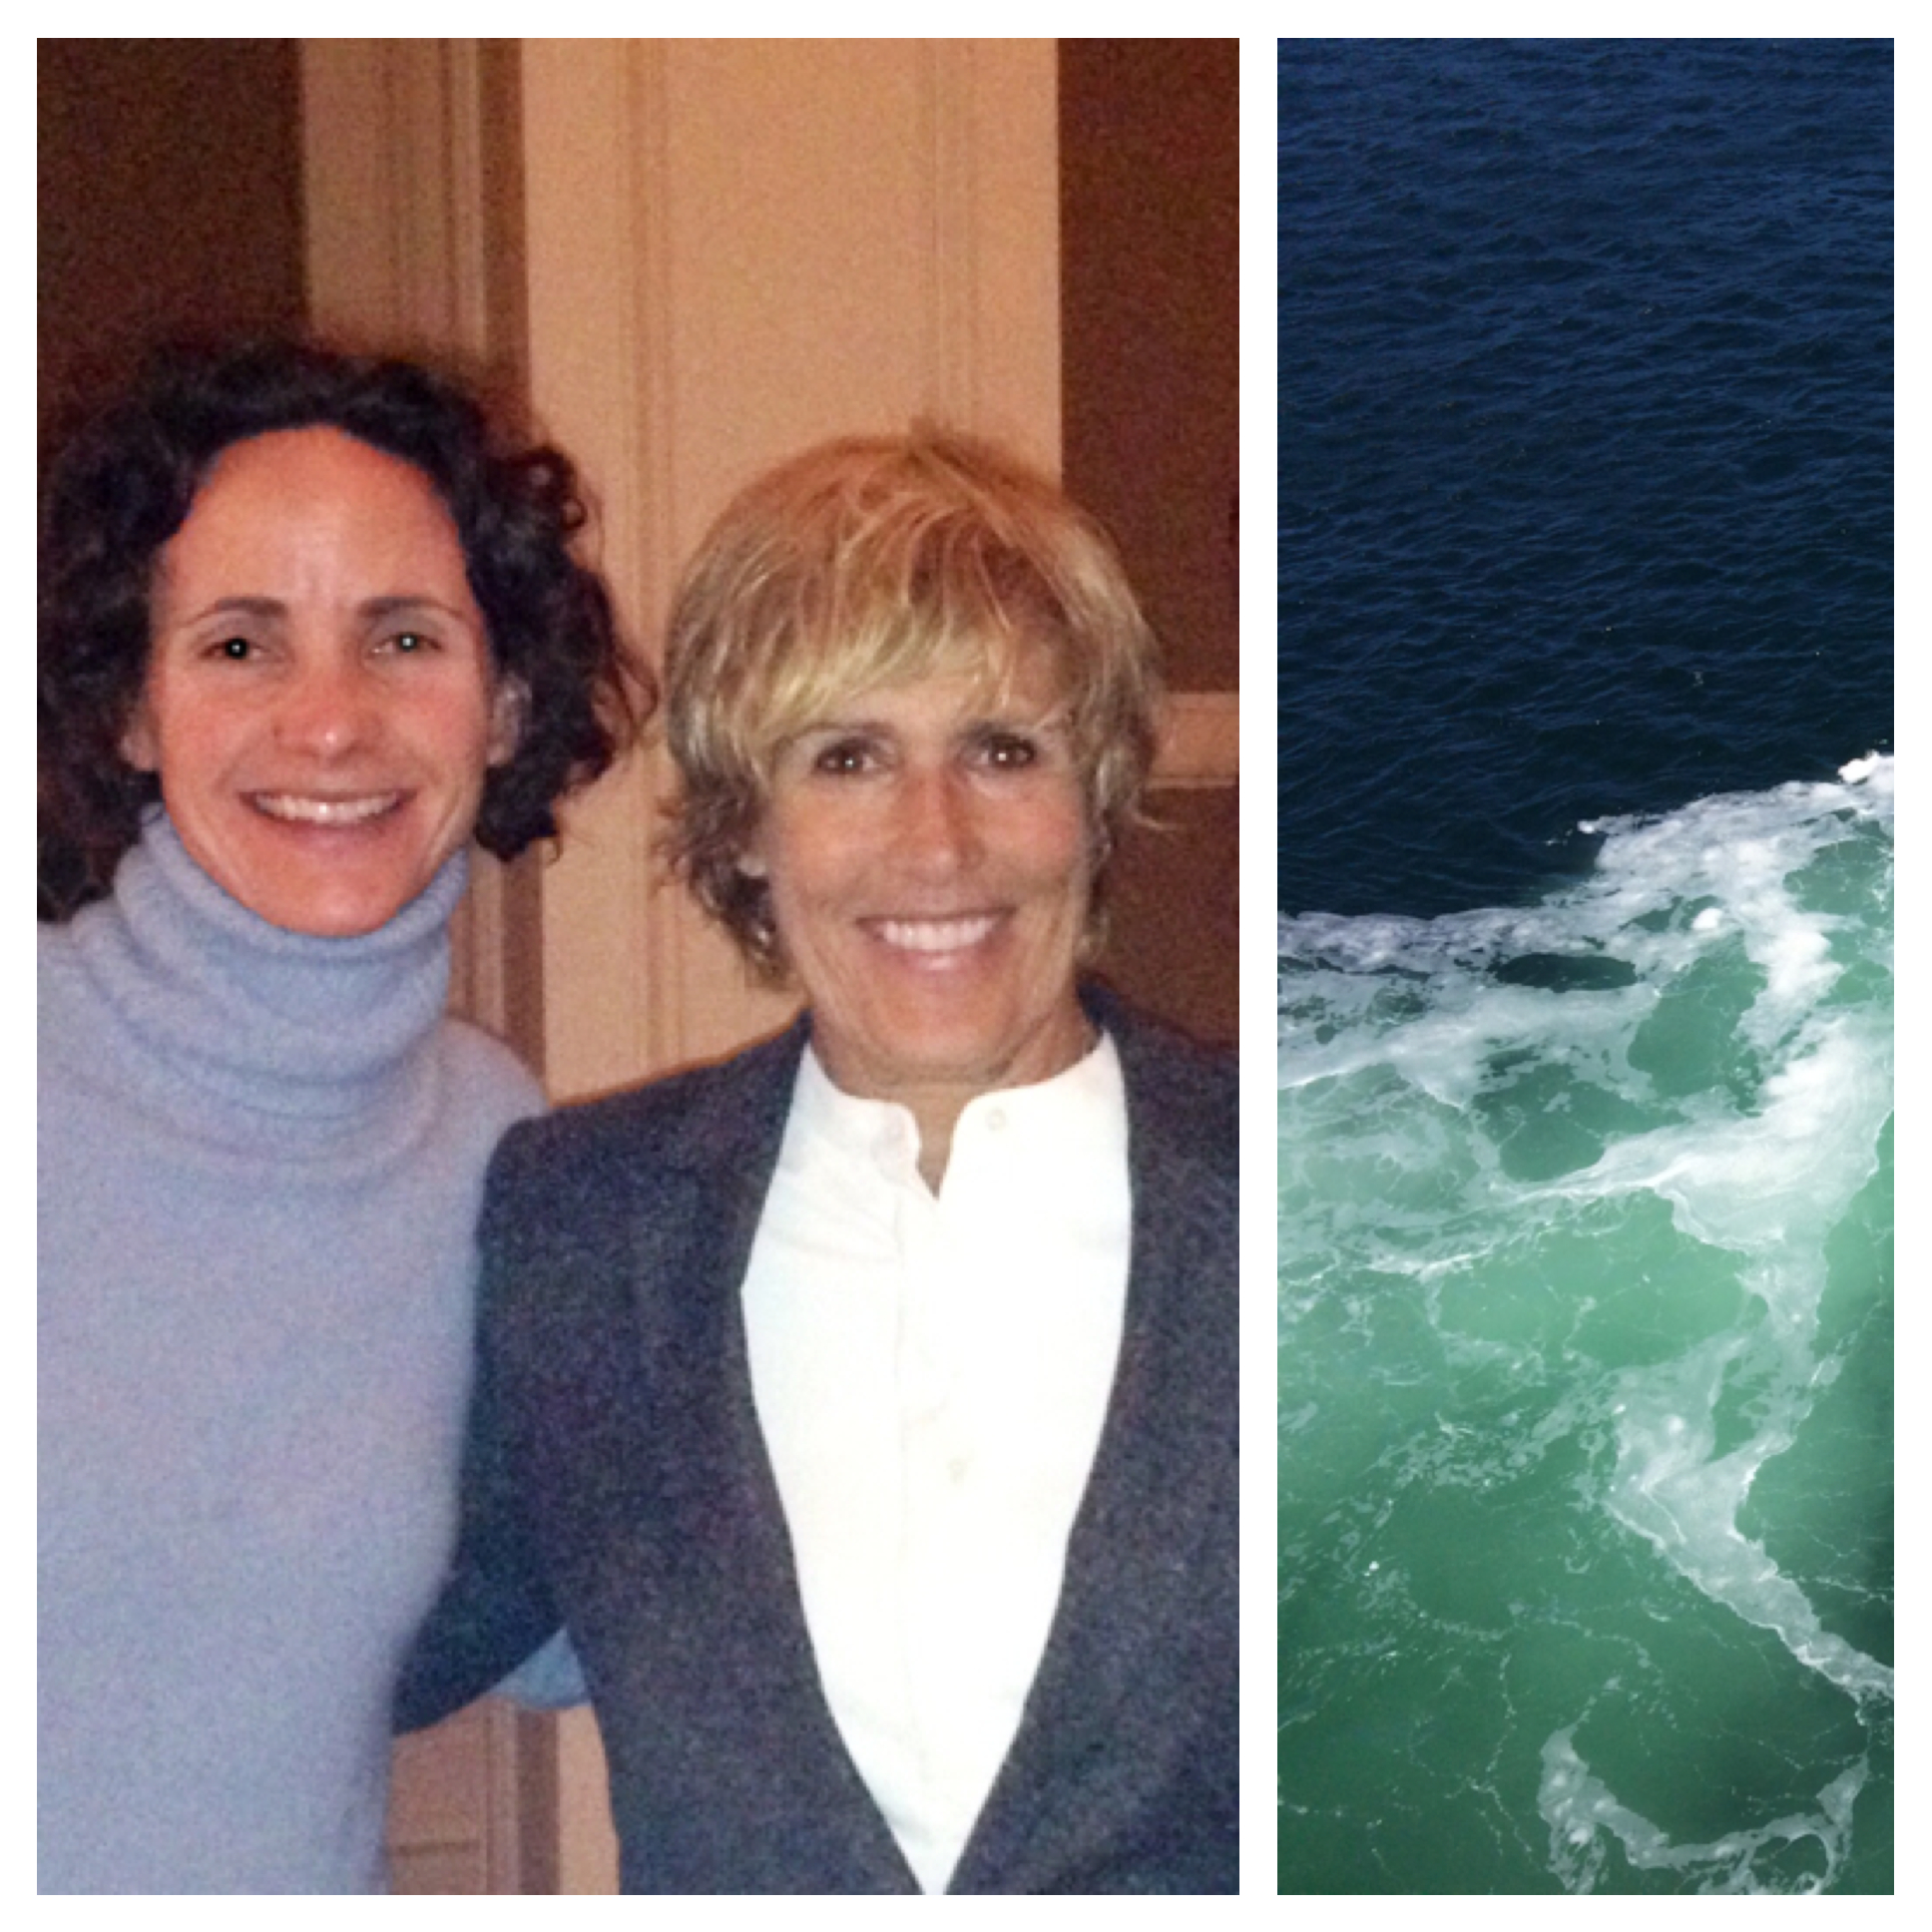 I recently had the honor of meeting Diana Nyad, the ultra-endurance swimmer who swam from Cuba to Florida at the age of 64. Diana was given food by her handlers every 90 minutes throughout her nearly 53-hour swim. Diana dialed in her nutrition plan over many months of training swims, many lasting as long as 15 hours.